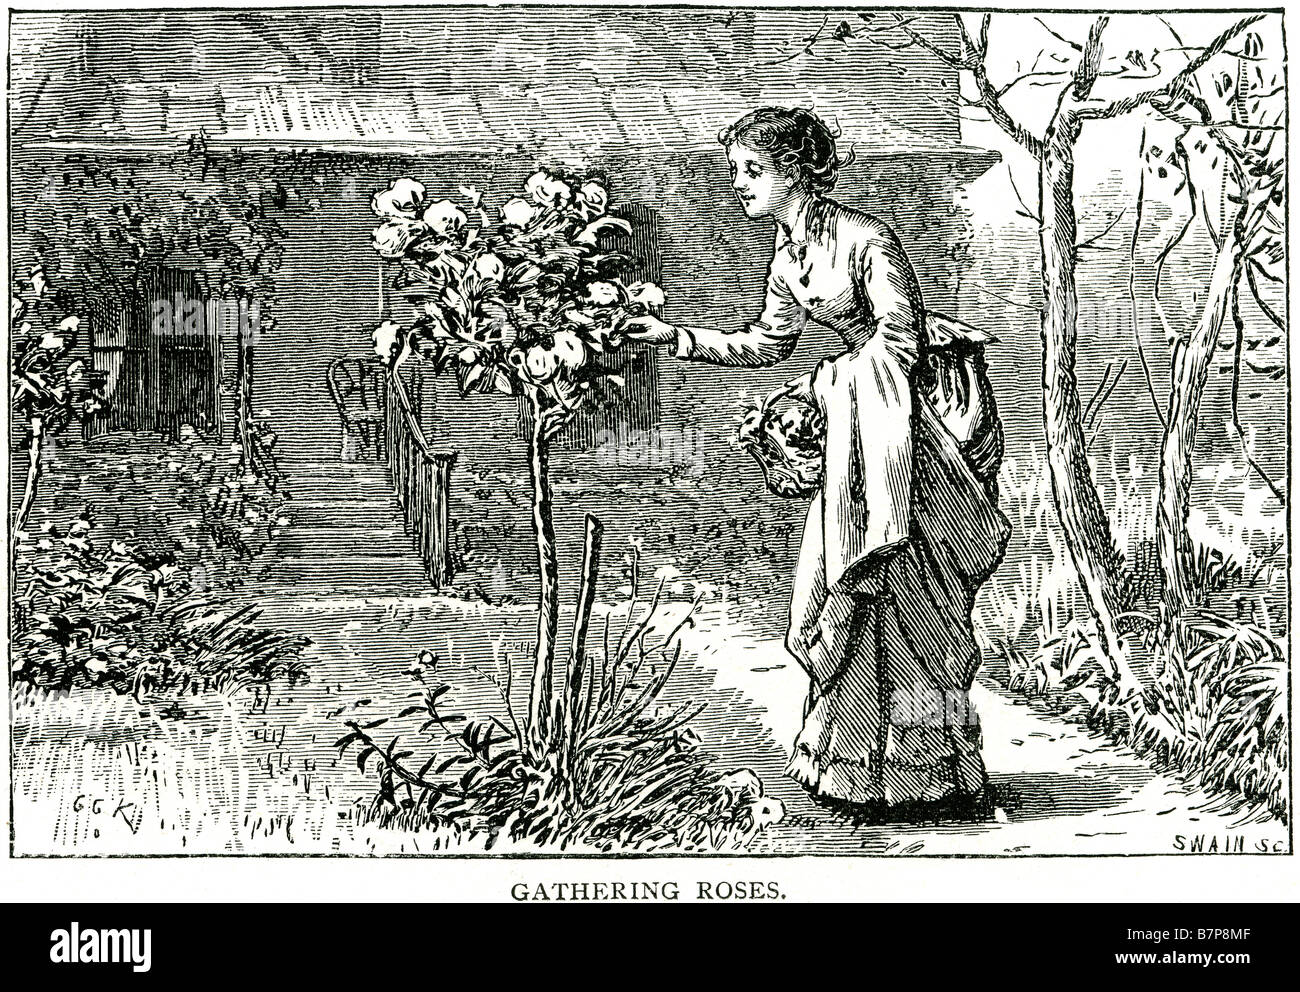 Gathering Roses Rose Bush Garden Lady Picking Flowers Traditional Clothing  House Decking Park Path Flower Summer Outside